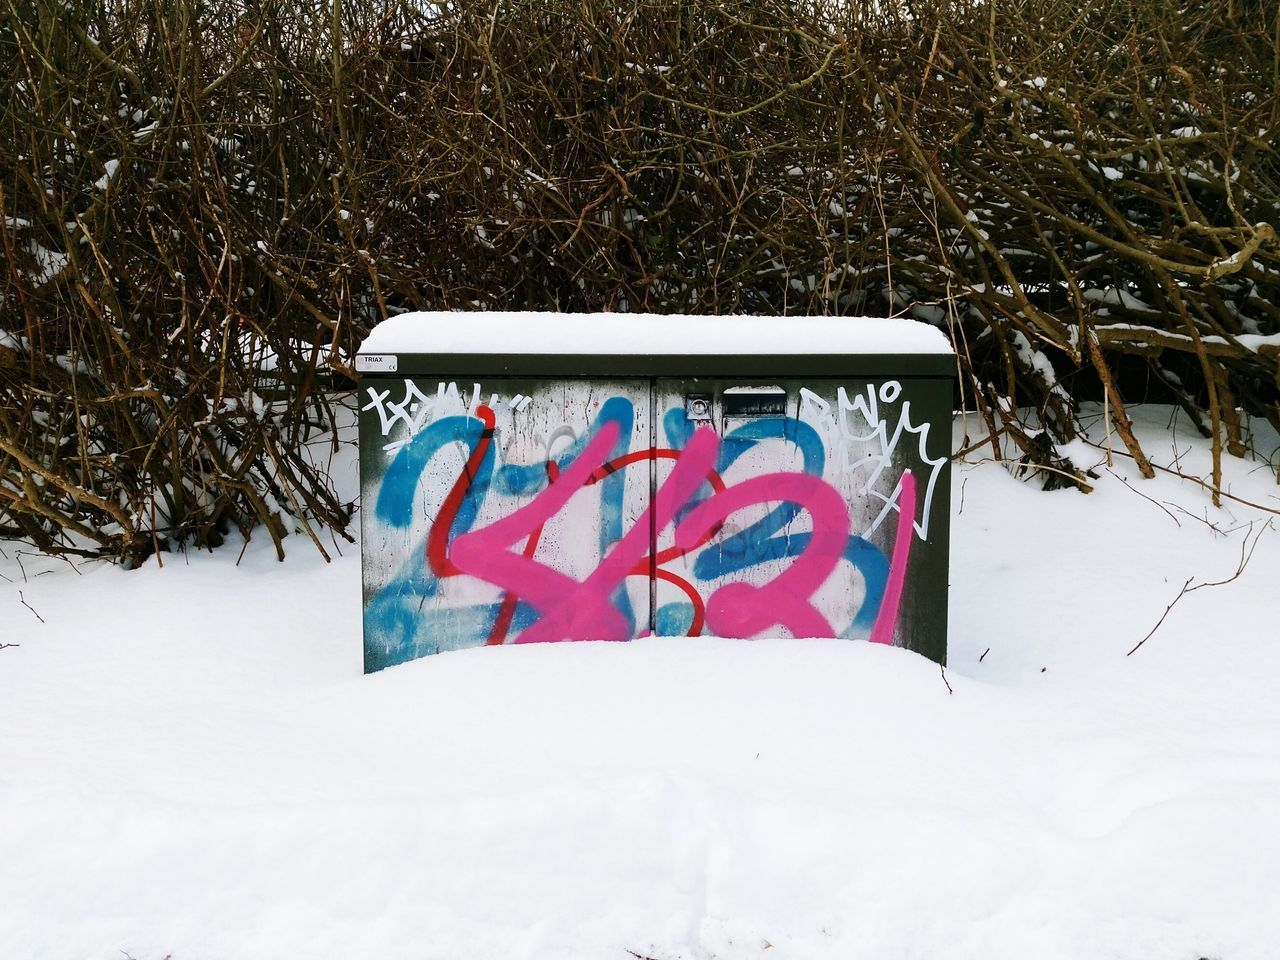 Graffiti Snow Winter Communication Outdoors Close-up No People Tagging Paint Drips Graffiti Wall Dirtyoldtown Urbanphotography Textures And Surfaces Urbanexploration Snowfall Whitewinter Cold Weather Cold Days Coldoutside Covered With Snow Day Aerosol Spray Paint Bush Hedgerow